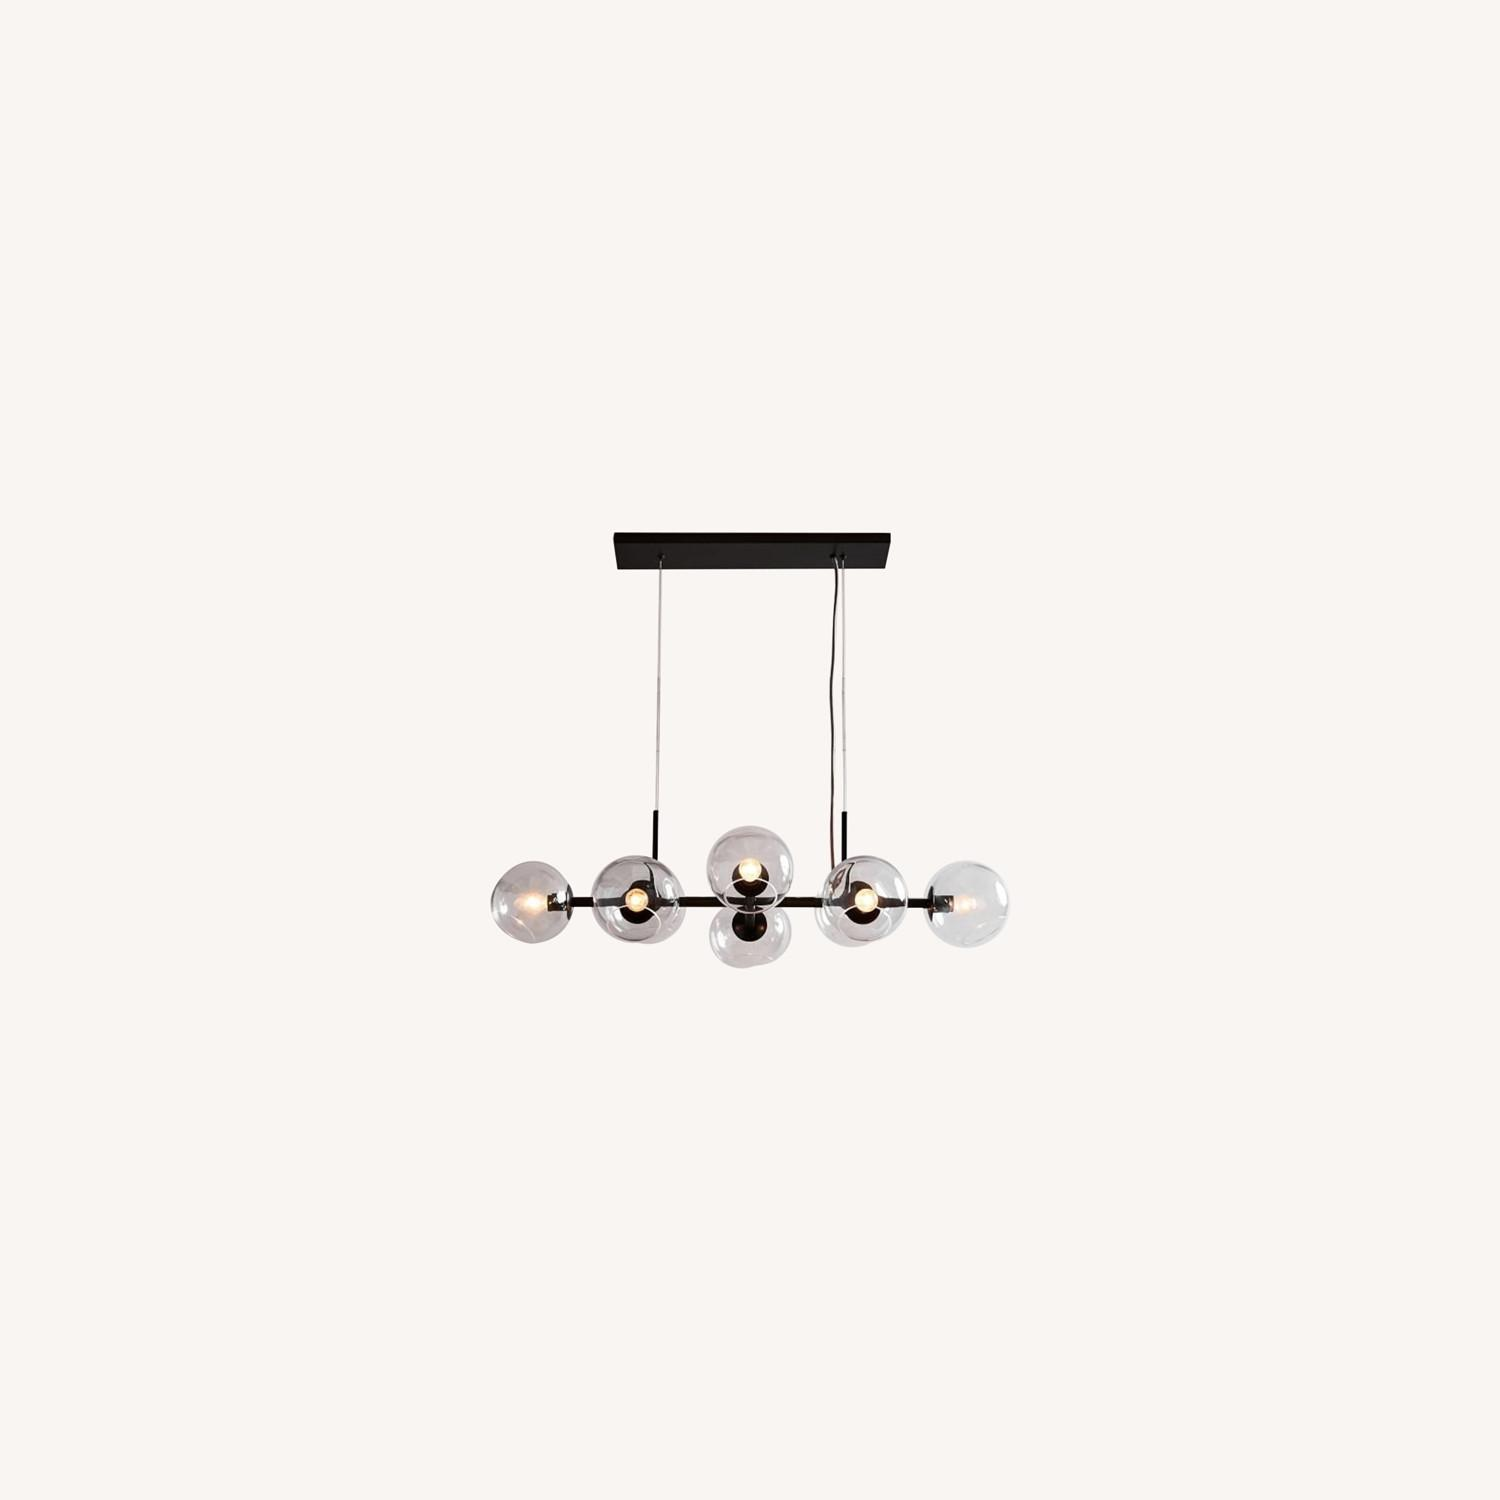 West Elm Staggered Glass 8-Light Chandelier - image-0